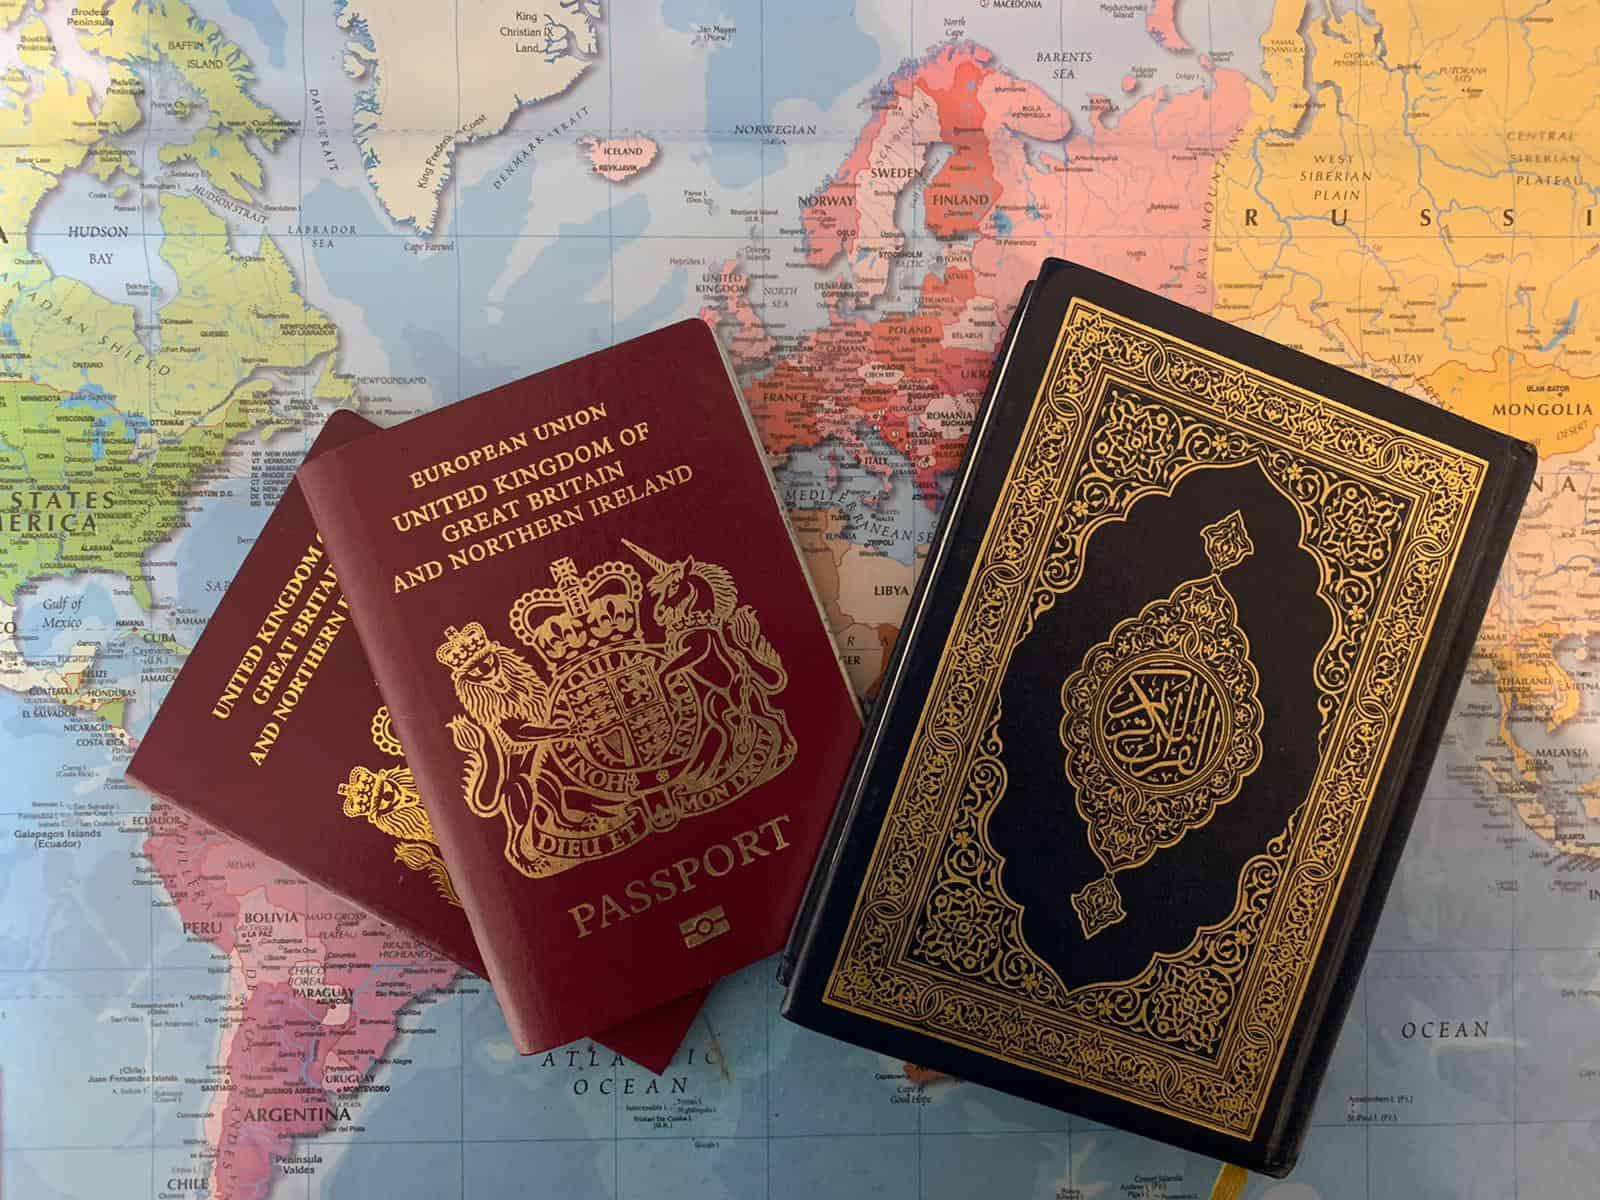 How do you maintain a Muslim identity in a non-Muslim environment?